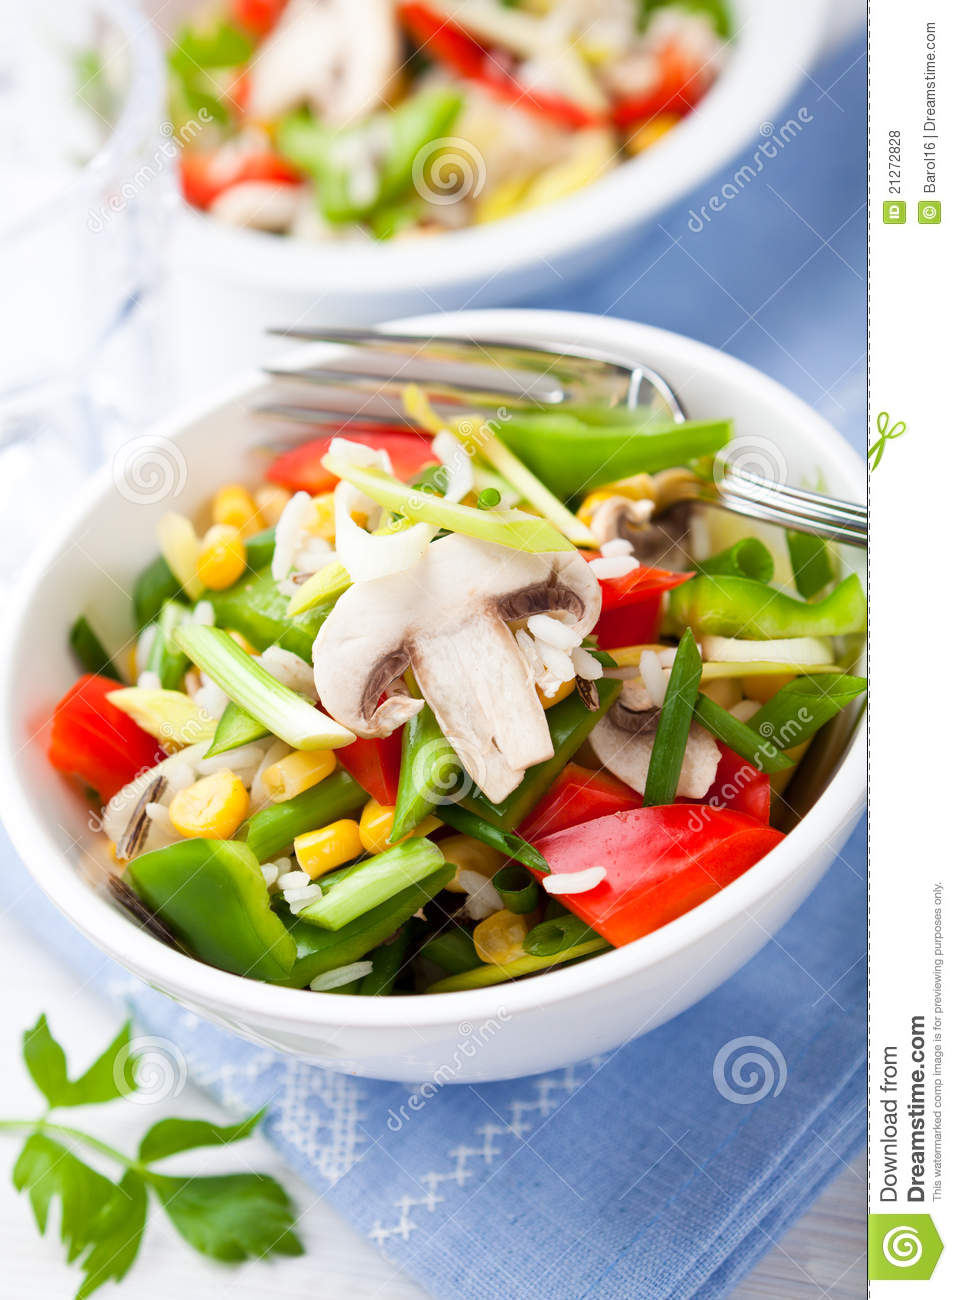 Rice salad with fresh mushrooms and vegetables.